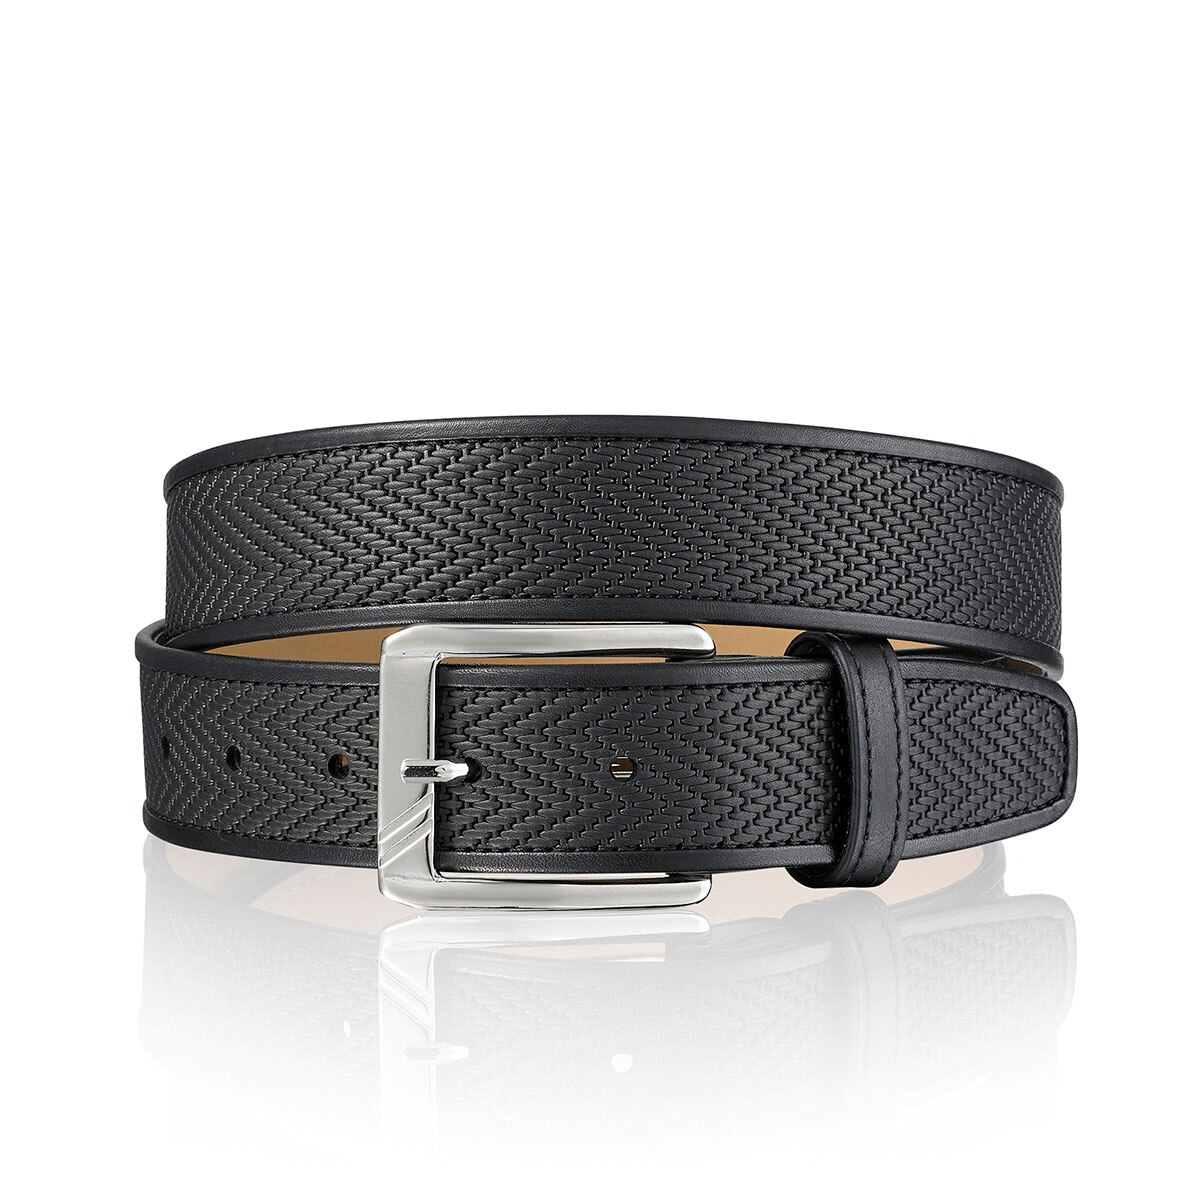 Russell and Bromley CHEVRON Mens Leather Belt